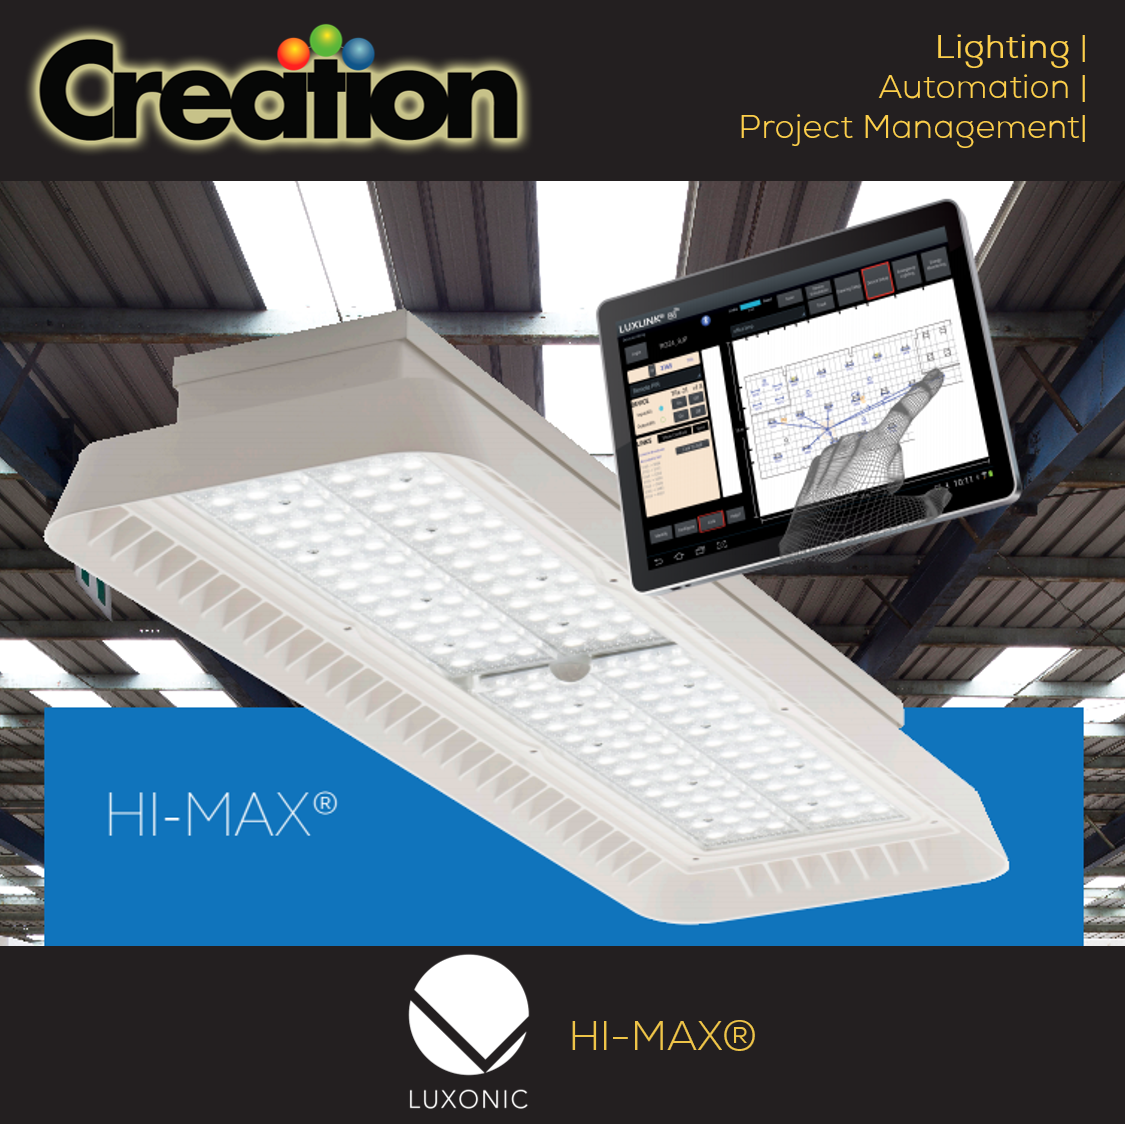 The #HI_MAX LED luminaire by #Luxonic is a high #efficiency aluminium diecast #HighBay #luminaire with light output options. Its #LED life is 60,000hrs and its control gear life is of 100,000hrs. Suitable for mains voltage peaks & has a #5Year #warranty. https://goo.gl/px6z2k